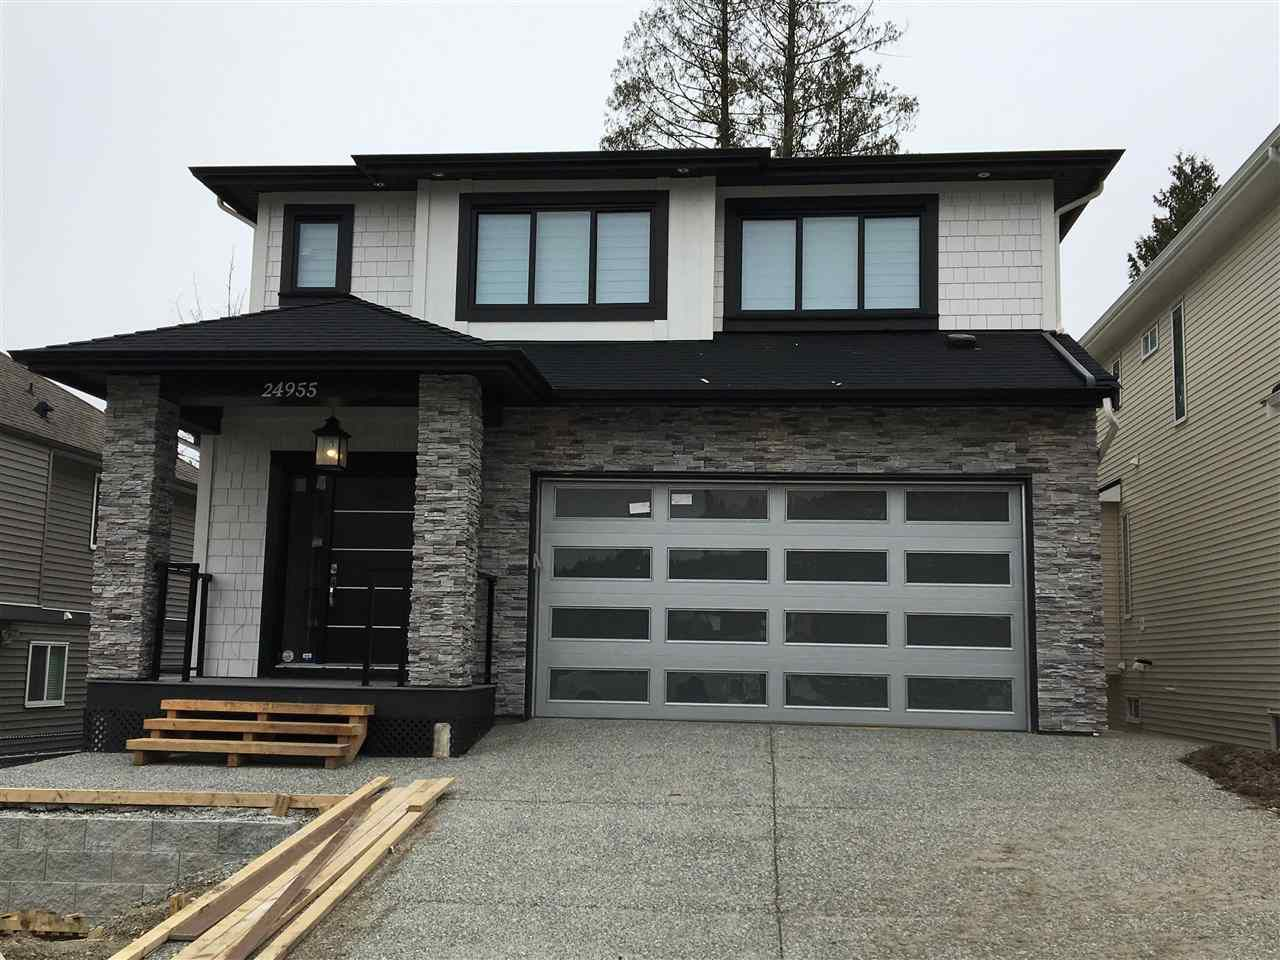 Main Photo: 24955 109 Avenue in Maple Ridge: Thornhill MR House for sale : MLS®# R2238257